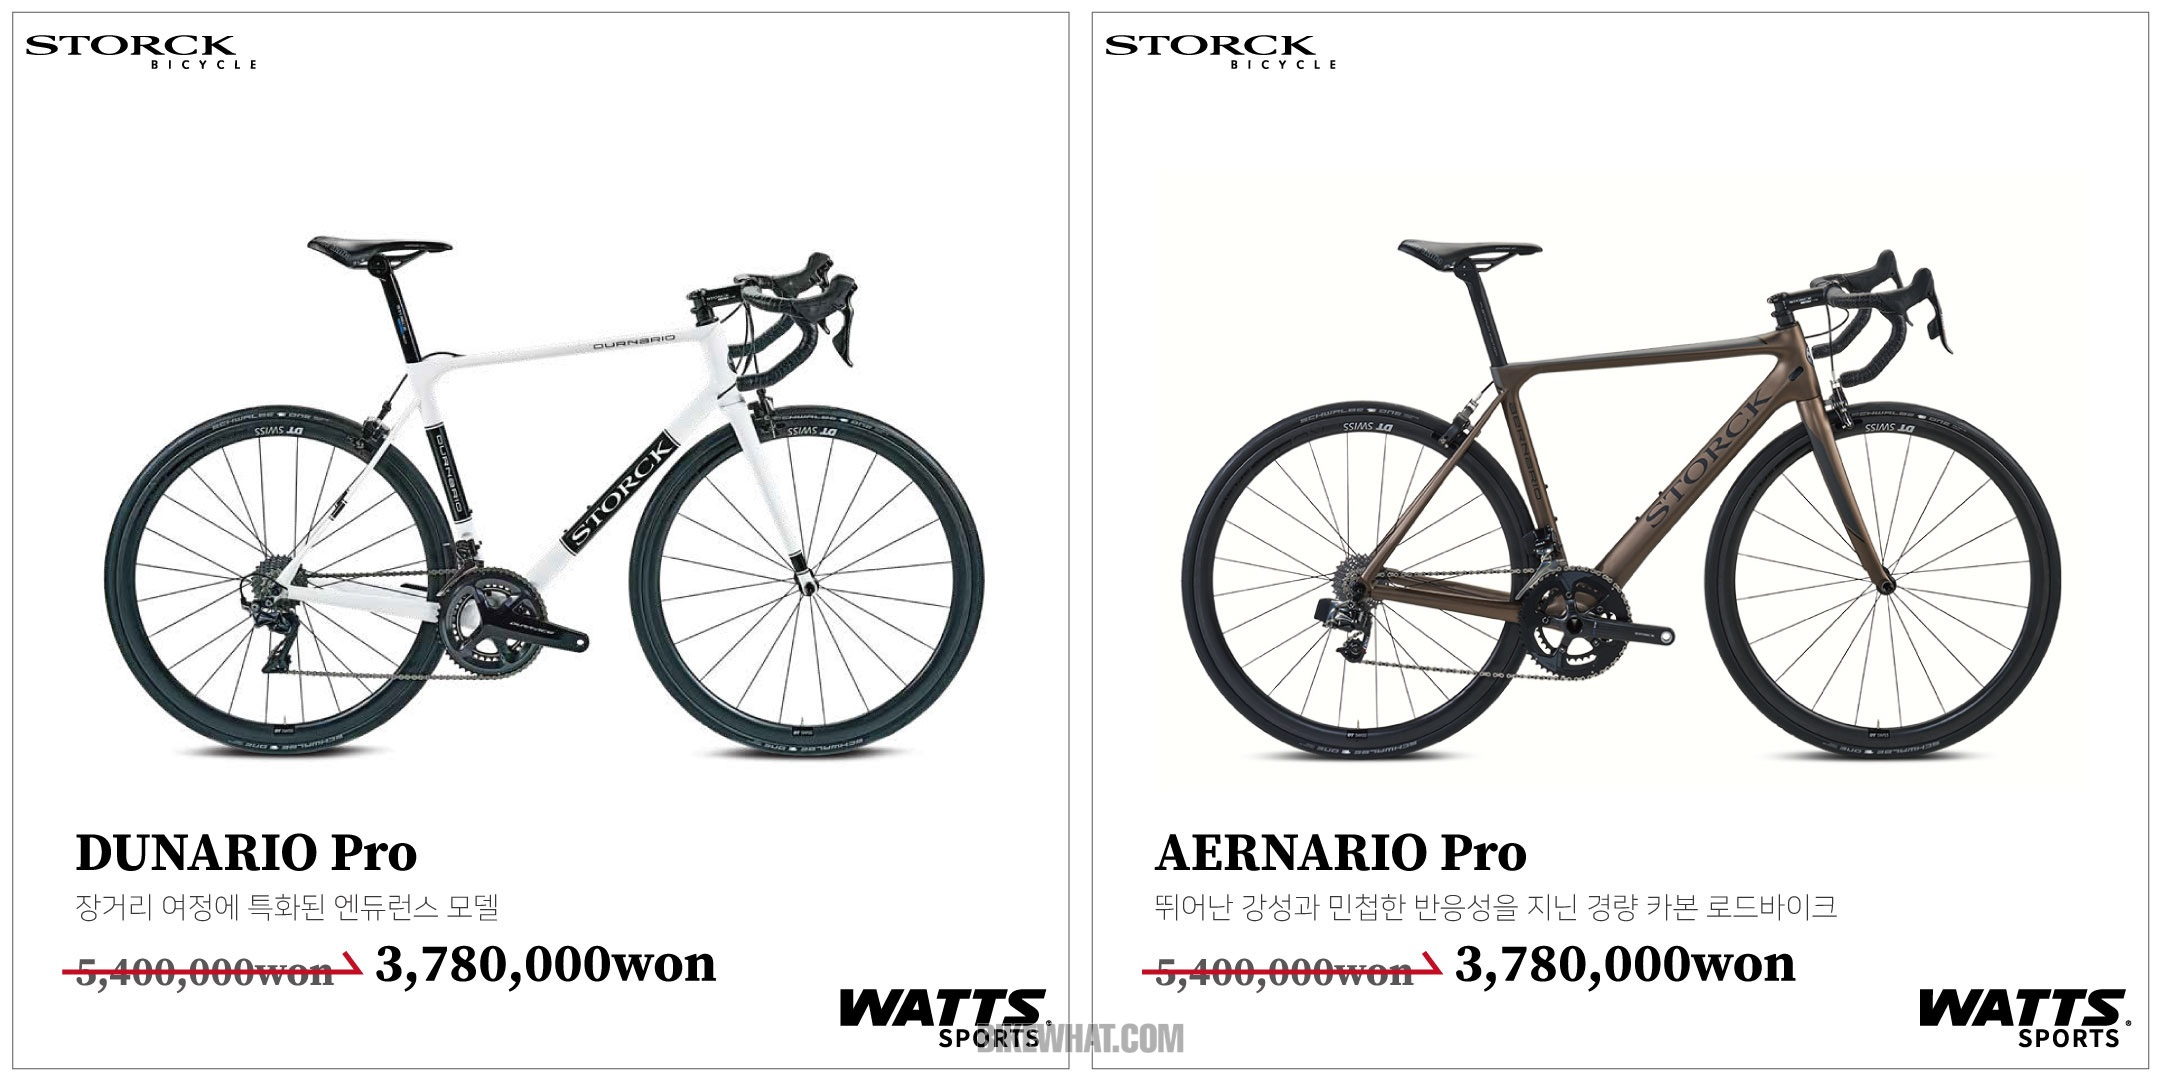 News_storck_sale_2.jpg